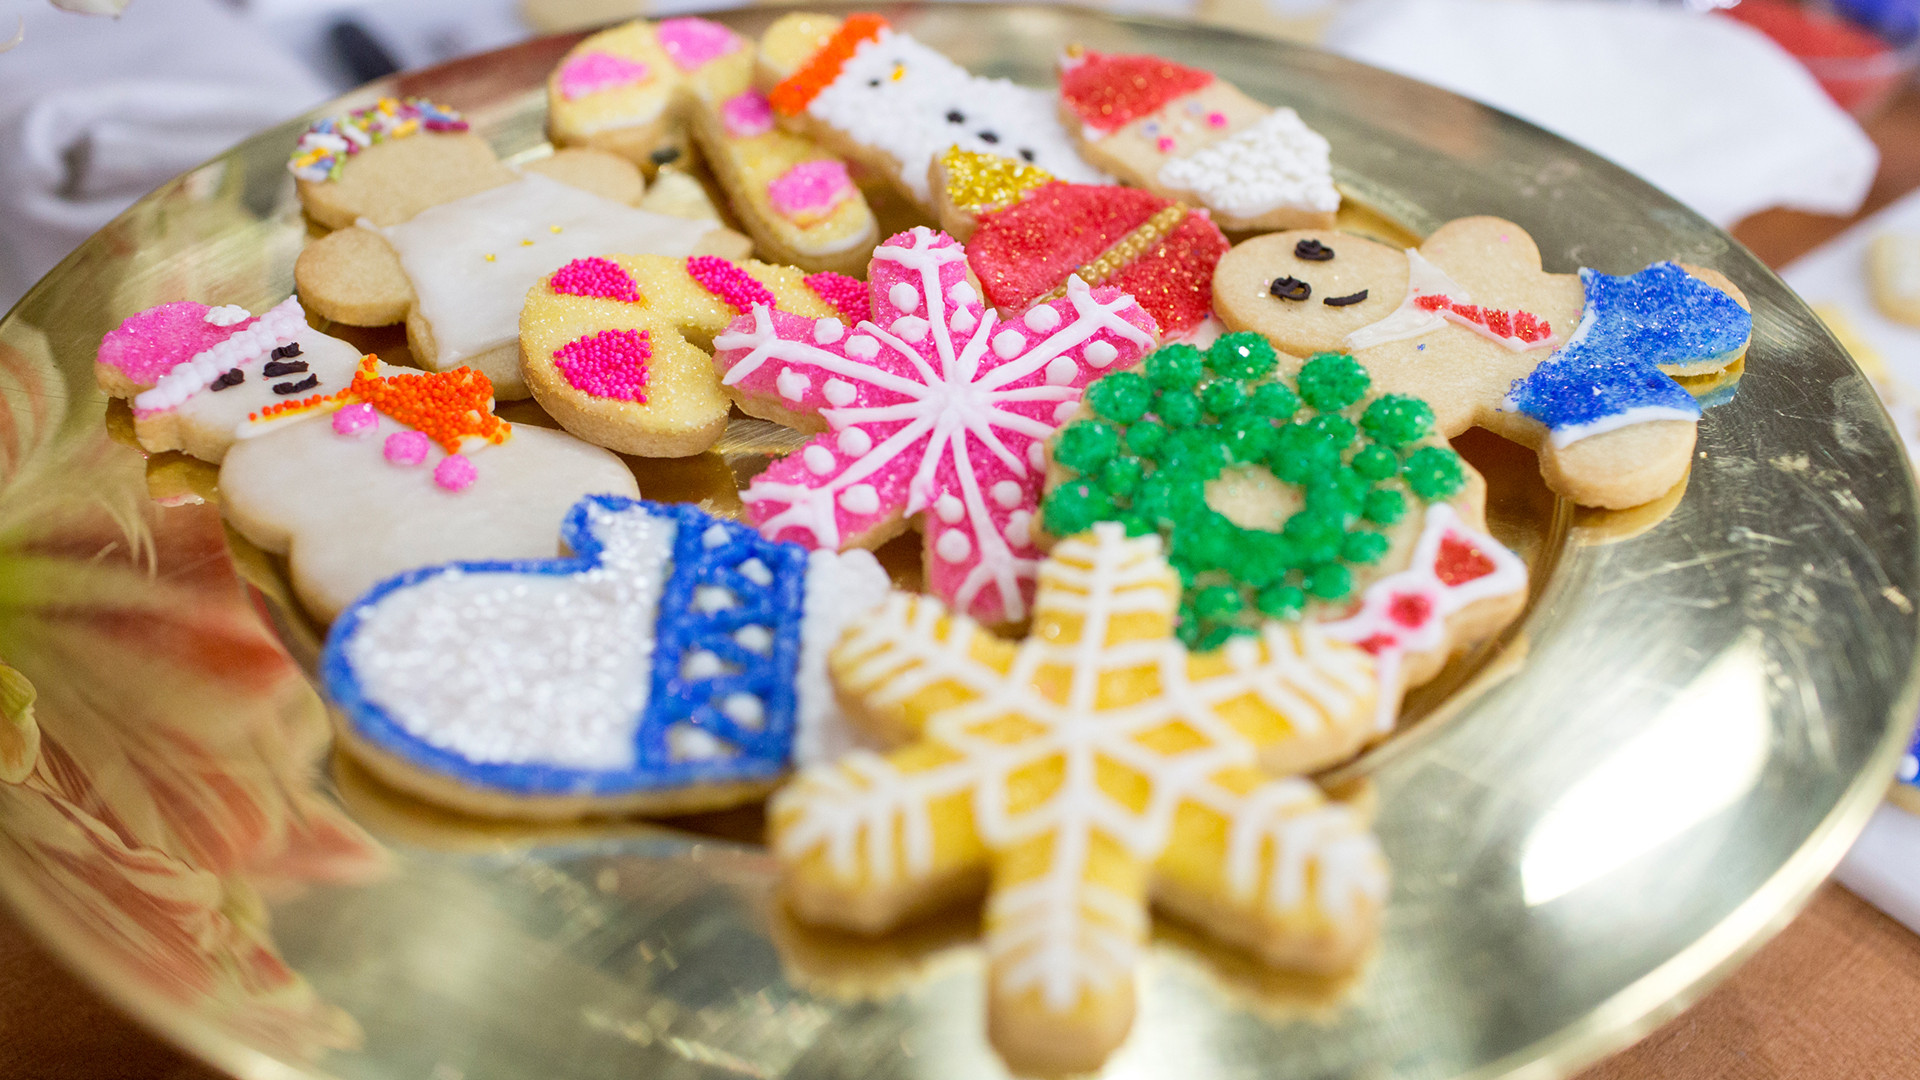 Christmas Cut Out Cookies  Christina Tosi s 4 Ingre nt Cutout Cookies TODAY